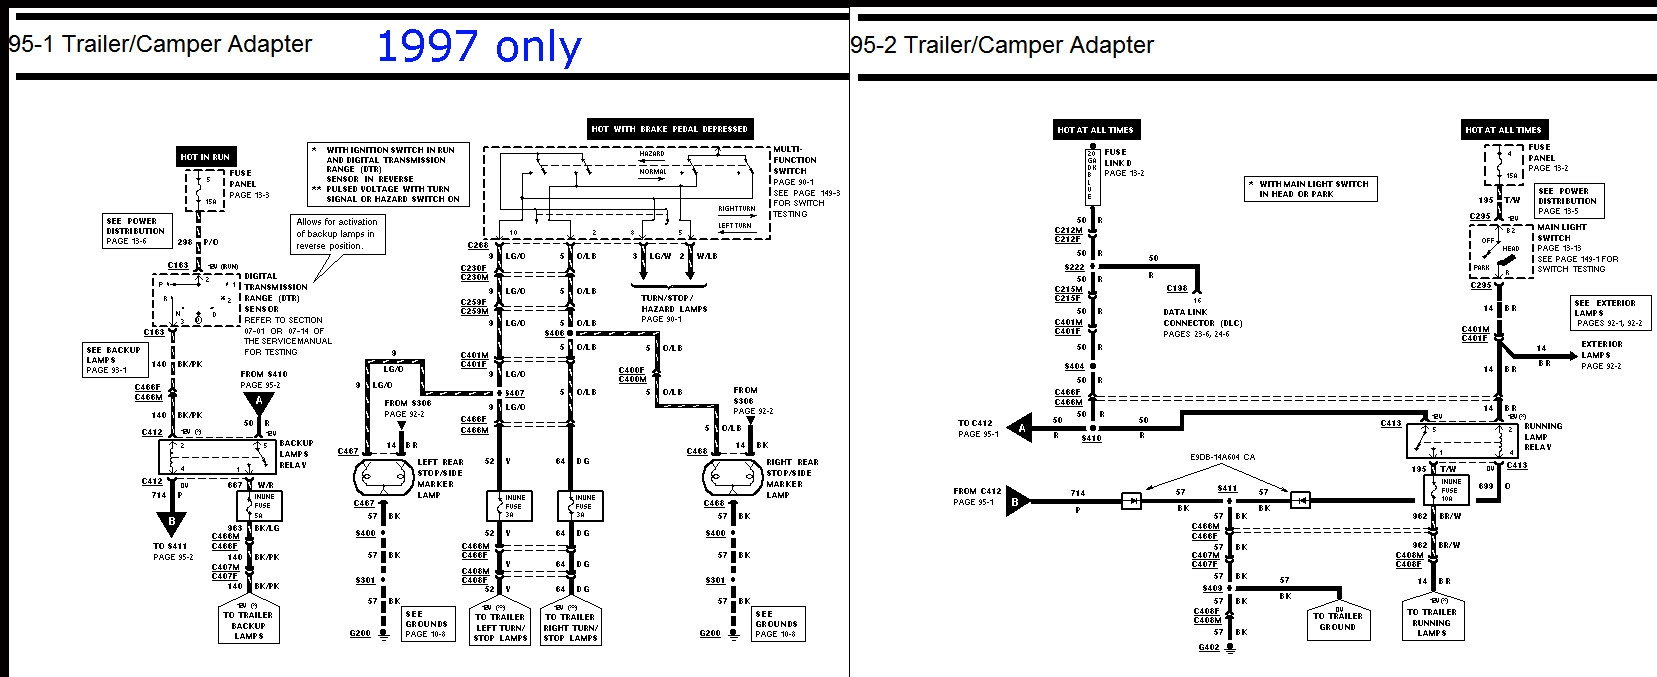 1996 F150 Trailer Wiring Diagram - Wiring Diagram K9 F Trailer Wiring Diagramfor on